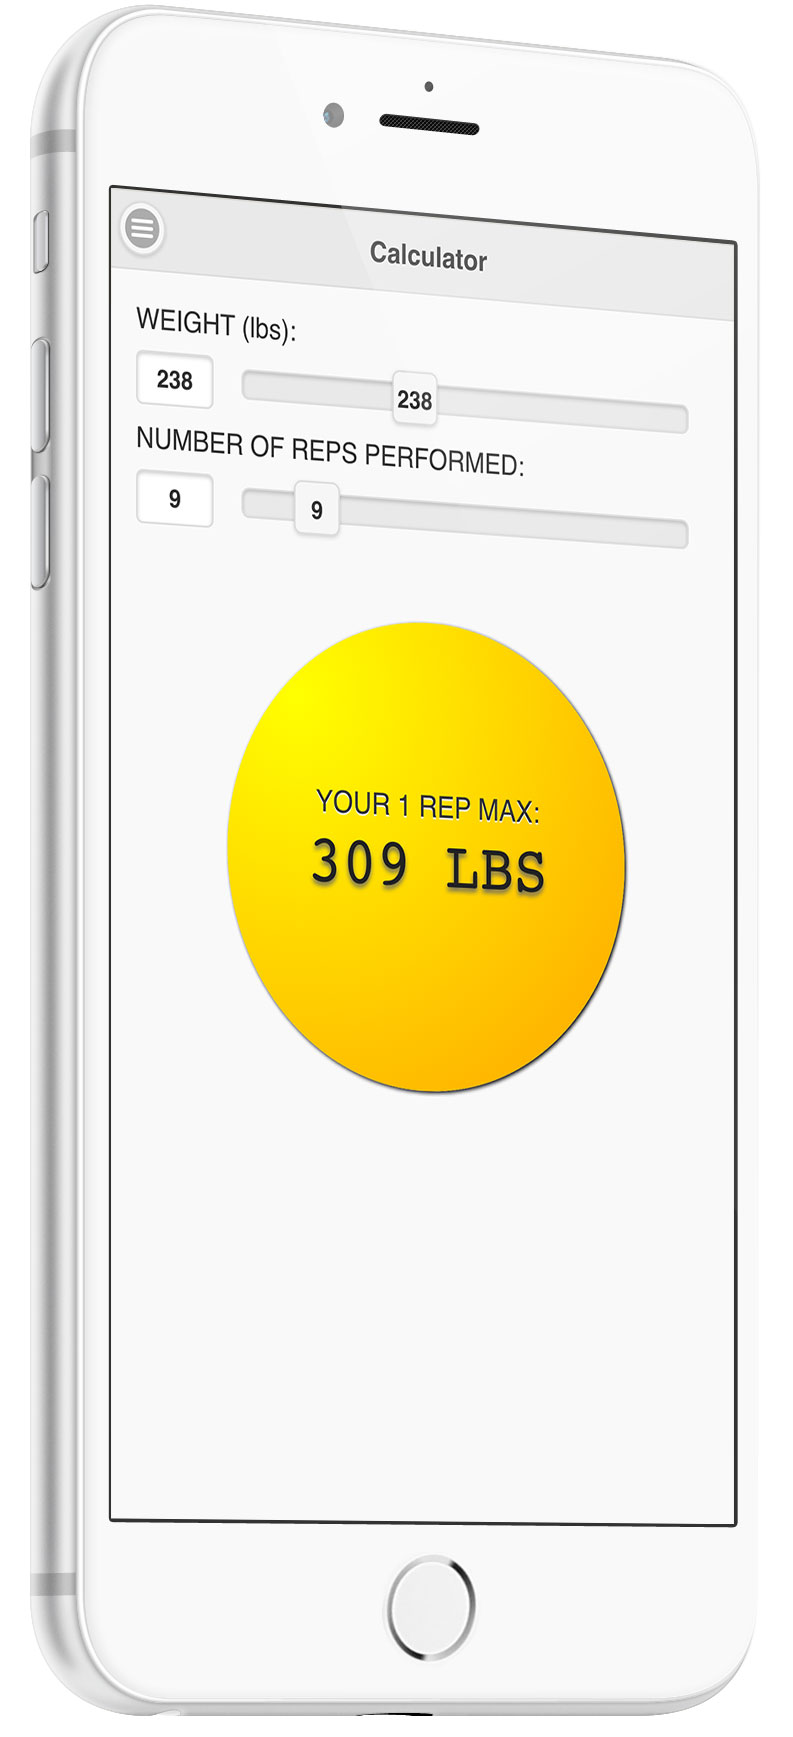 How to calculate your one rep max 1rm one rep max calculator app nvjuhfo Choice Image